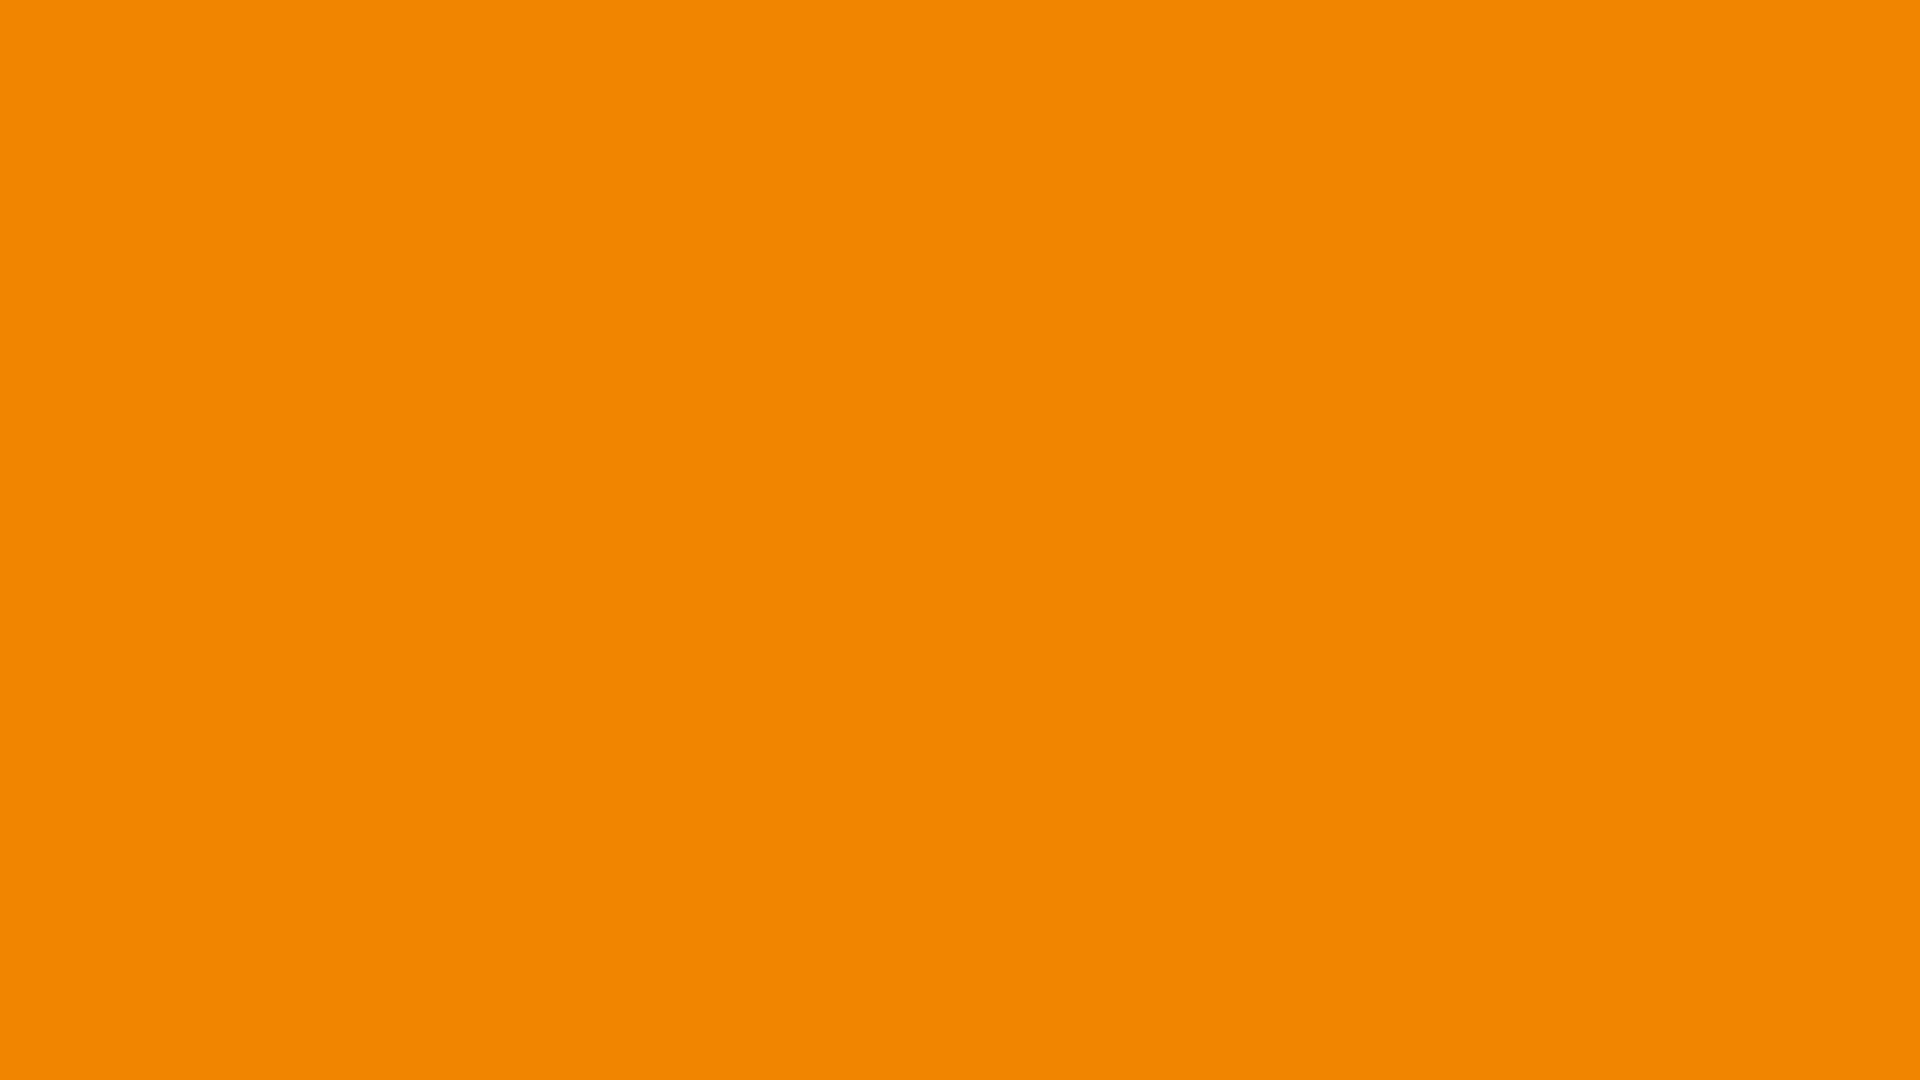 1920x1080 Tangerine Solid Color Background